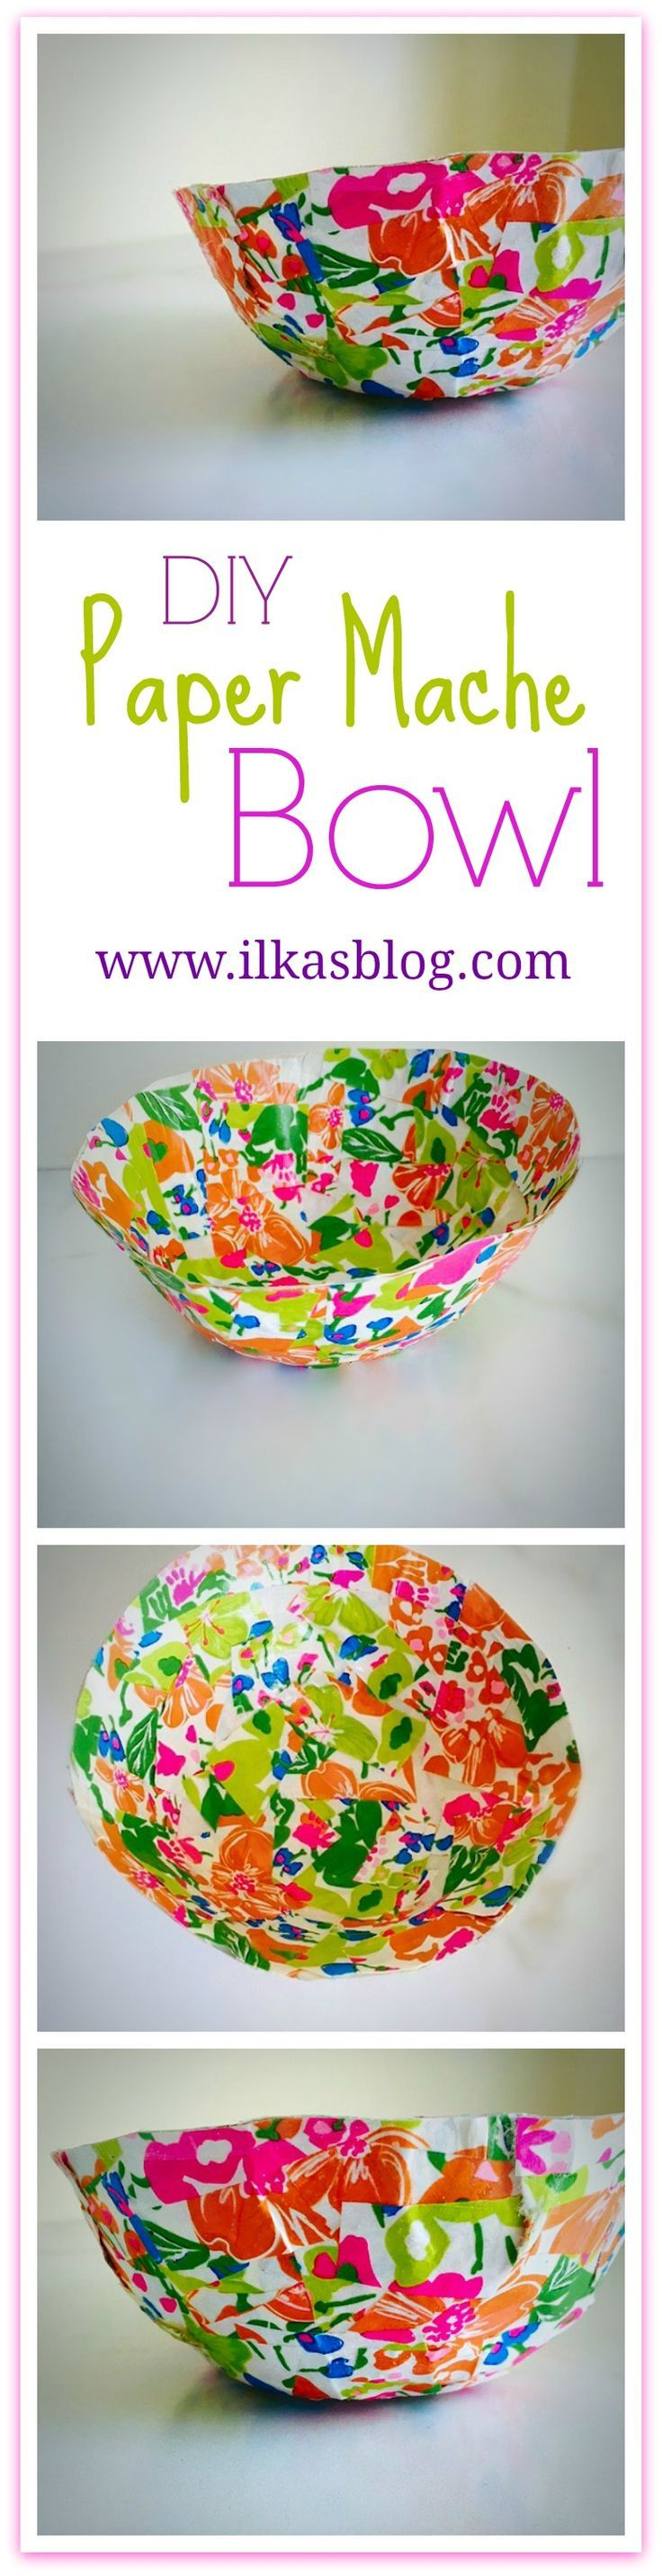 17 best images about paper mache crafts on pinterest for Diy paper bowl